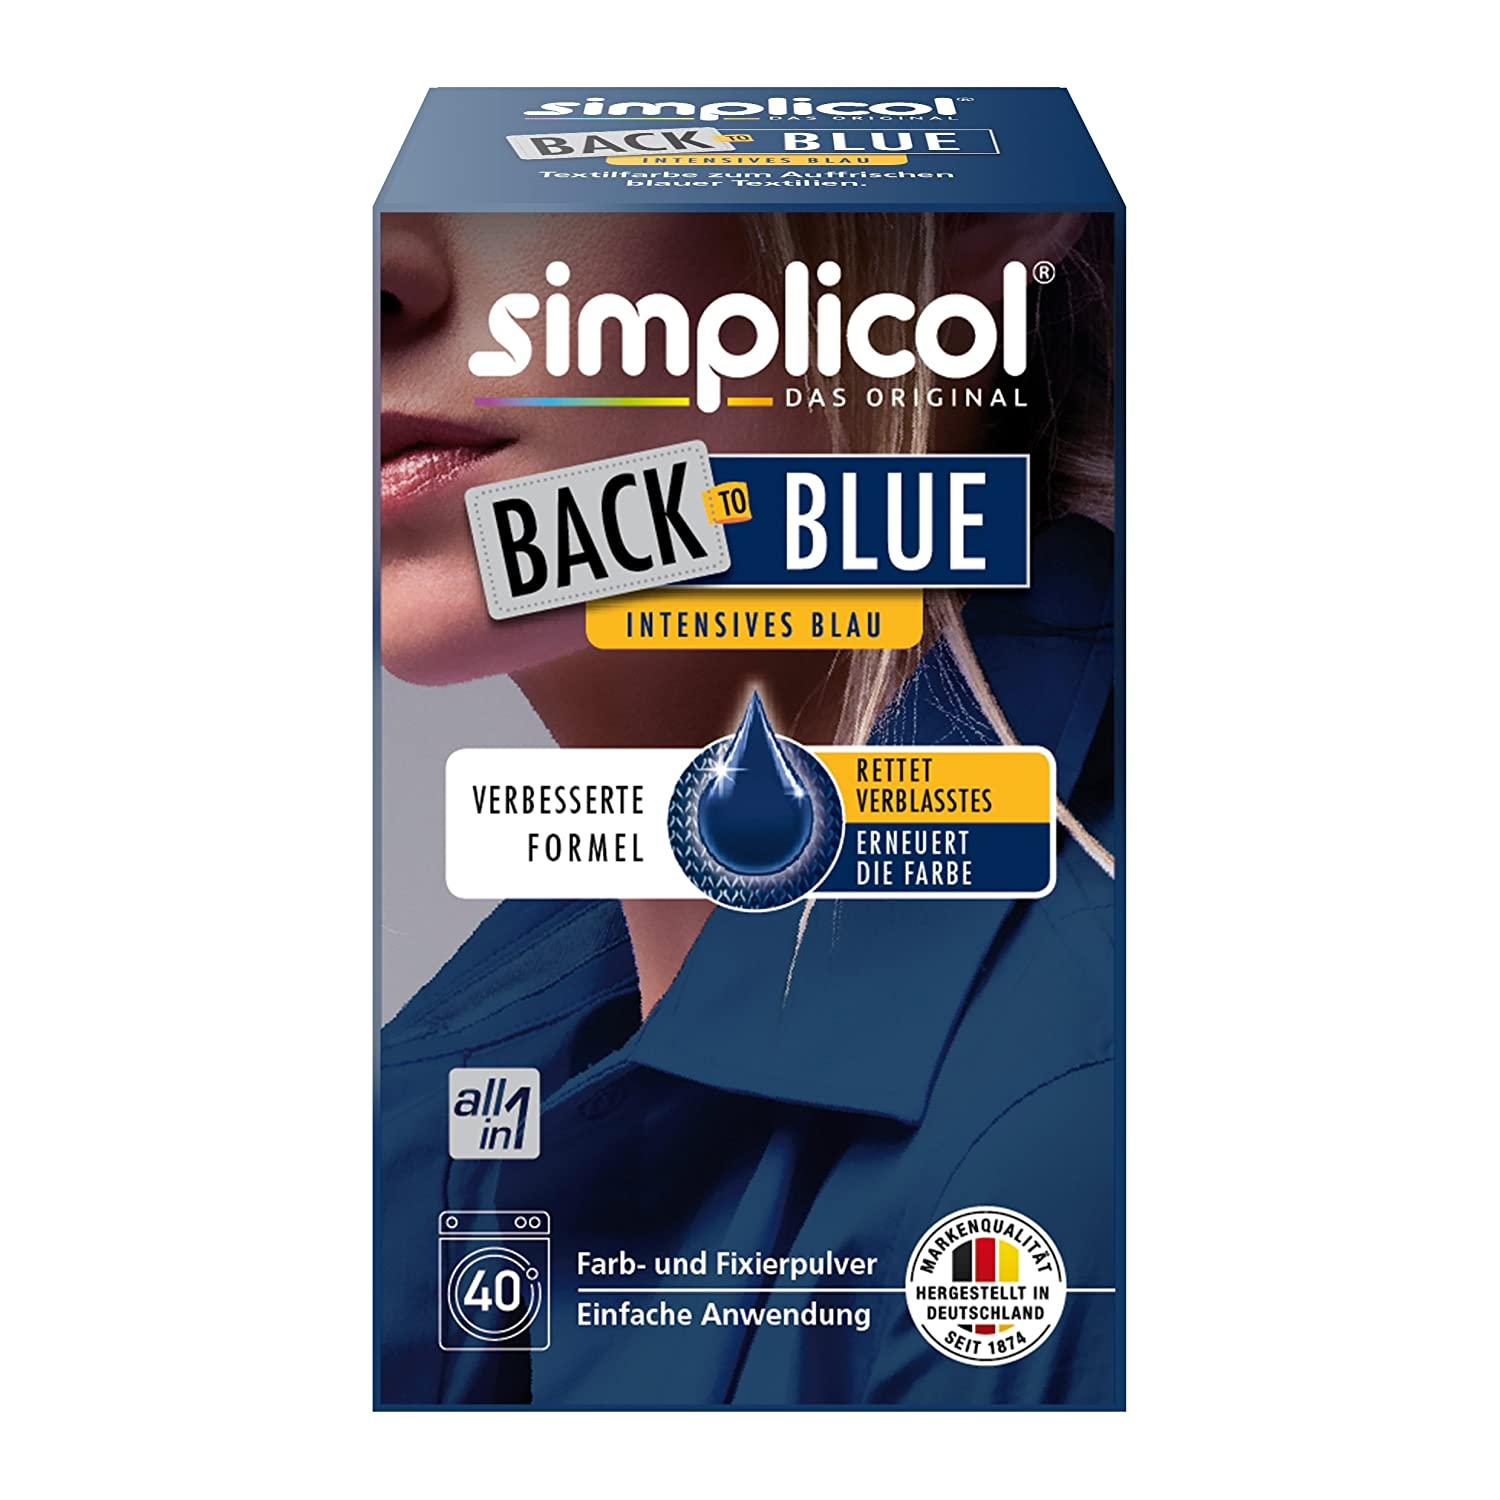 Simplicol Fabric Colour Back-to-Back Renewal – Blue Blue: Restores colour & Renewal Machine – All in 1 – Complete DIY Dye Spice Mix with Textile Paint for 2018ER Version Brauns-Heitmann 2513